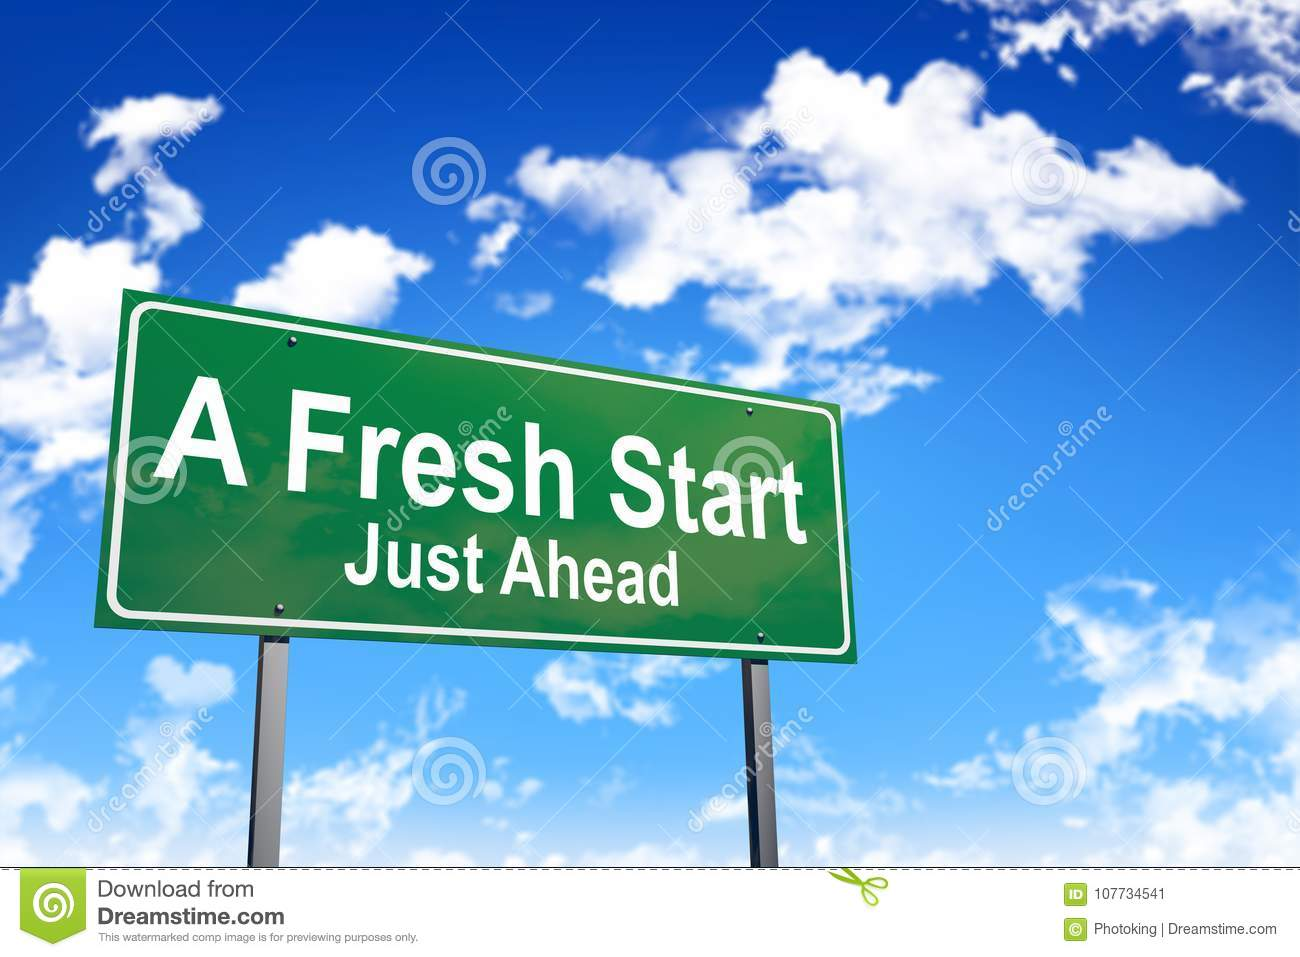 Download A fresh start road sign stock image. Image of signpost - 107734541